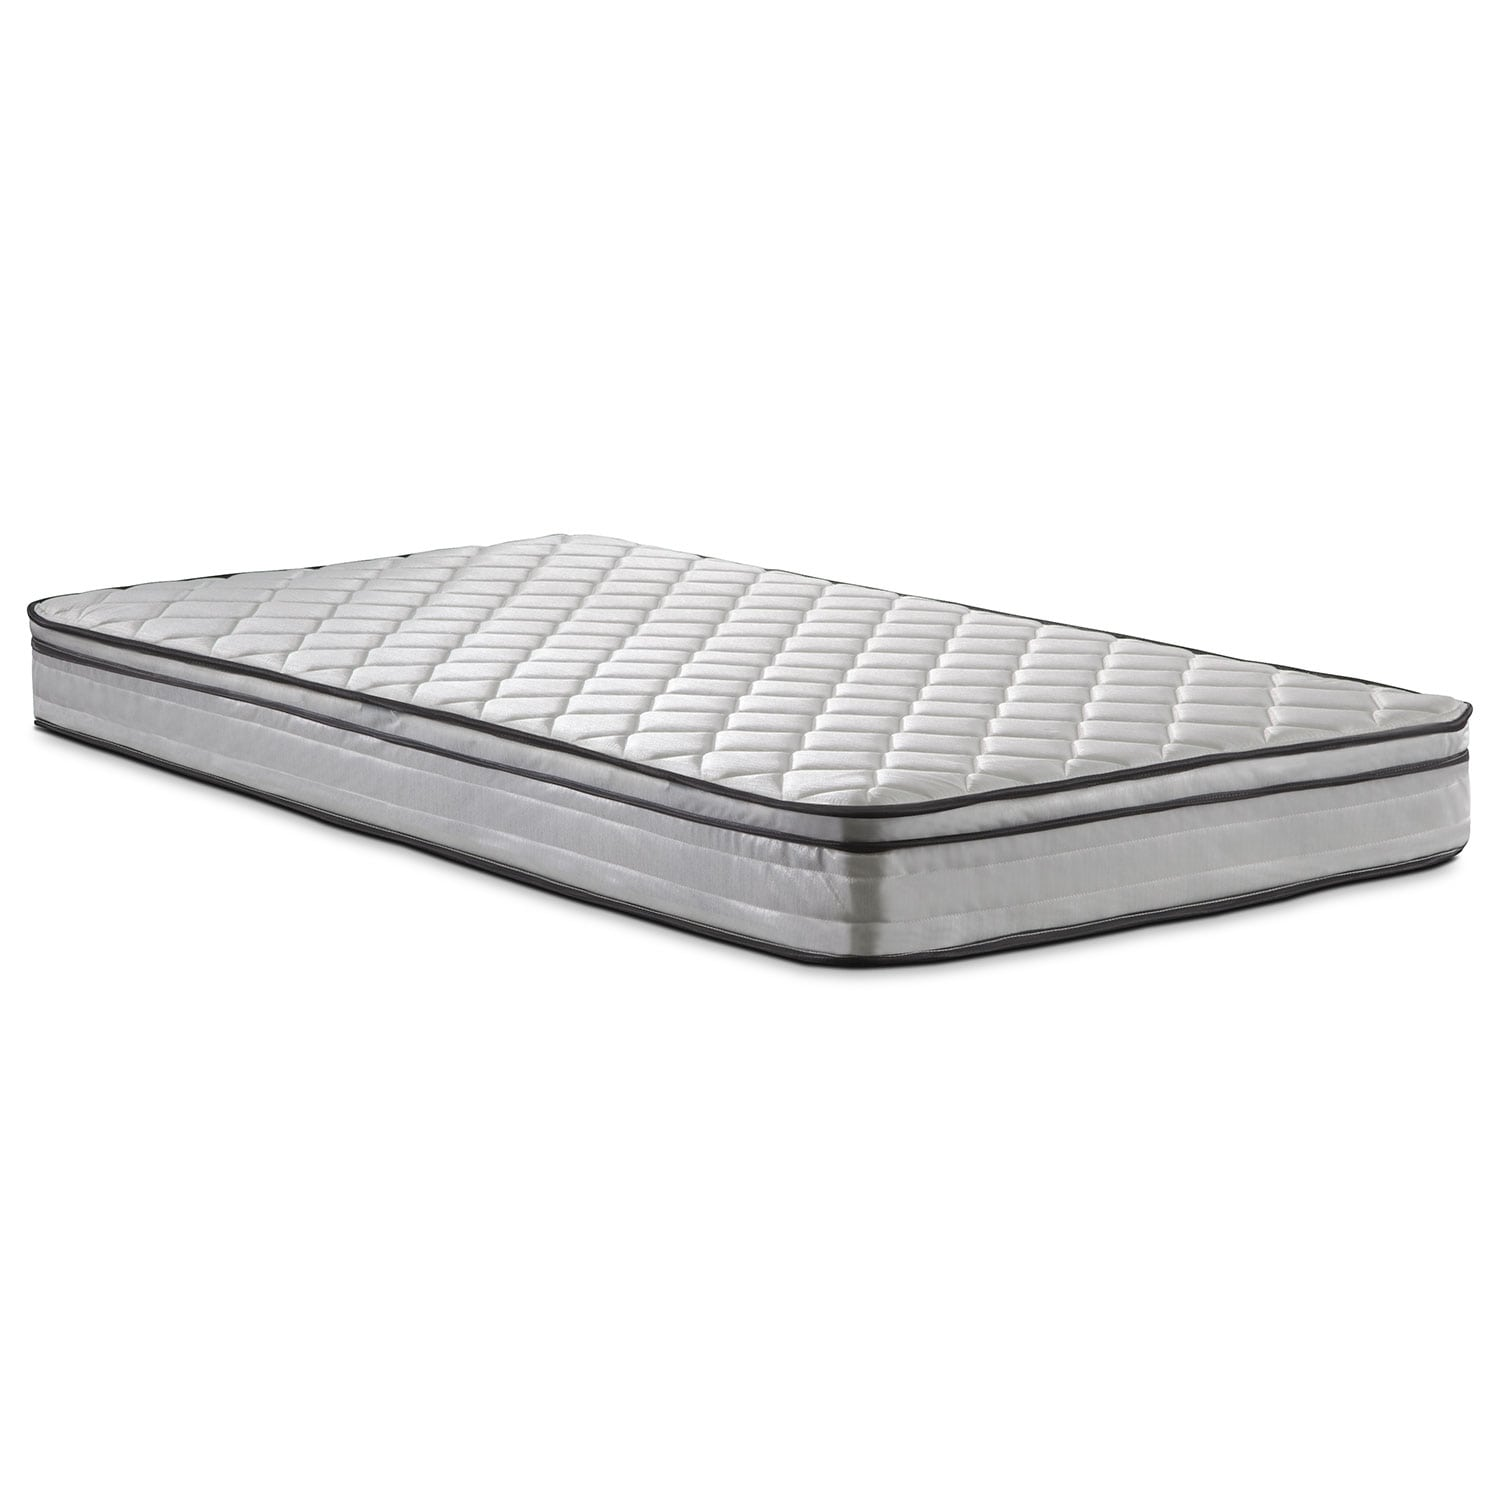 Mattresses and Bedding - Mirage Twin Mattress